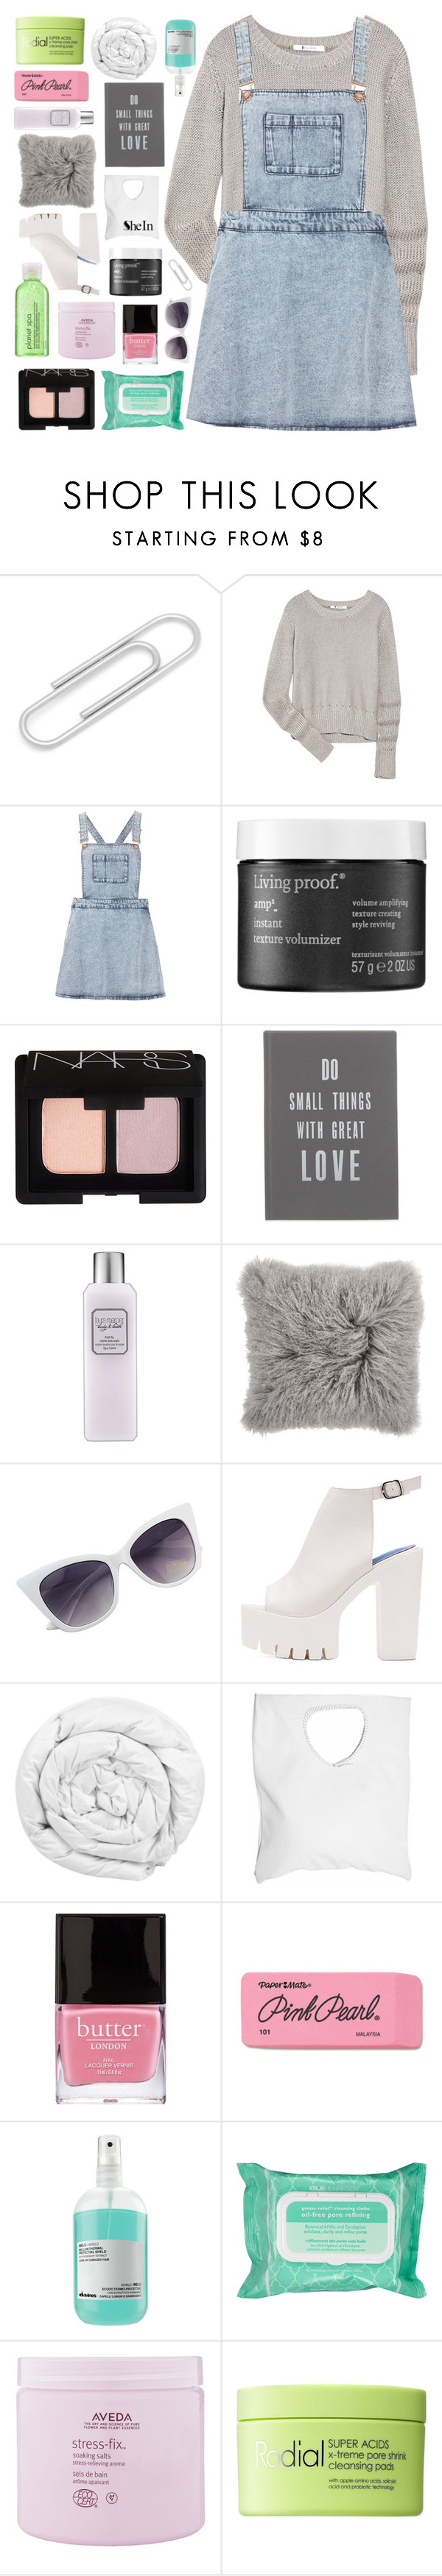 """""""HAVE ME CRYSTALISED"""" by elainesabine ❤ liked on Polyvore featuring T By Alexander Wang, Topshop, Living Proof, NARS Cosmetics, The White Company, Laura Mercier, Brinkhaus, Jennifer Haley, Butter London and Paper Mate"""